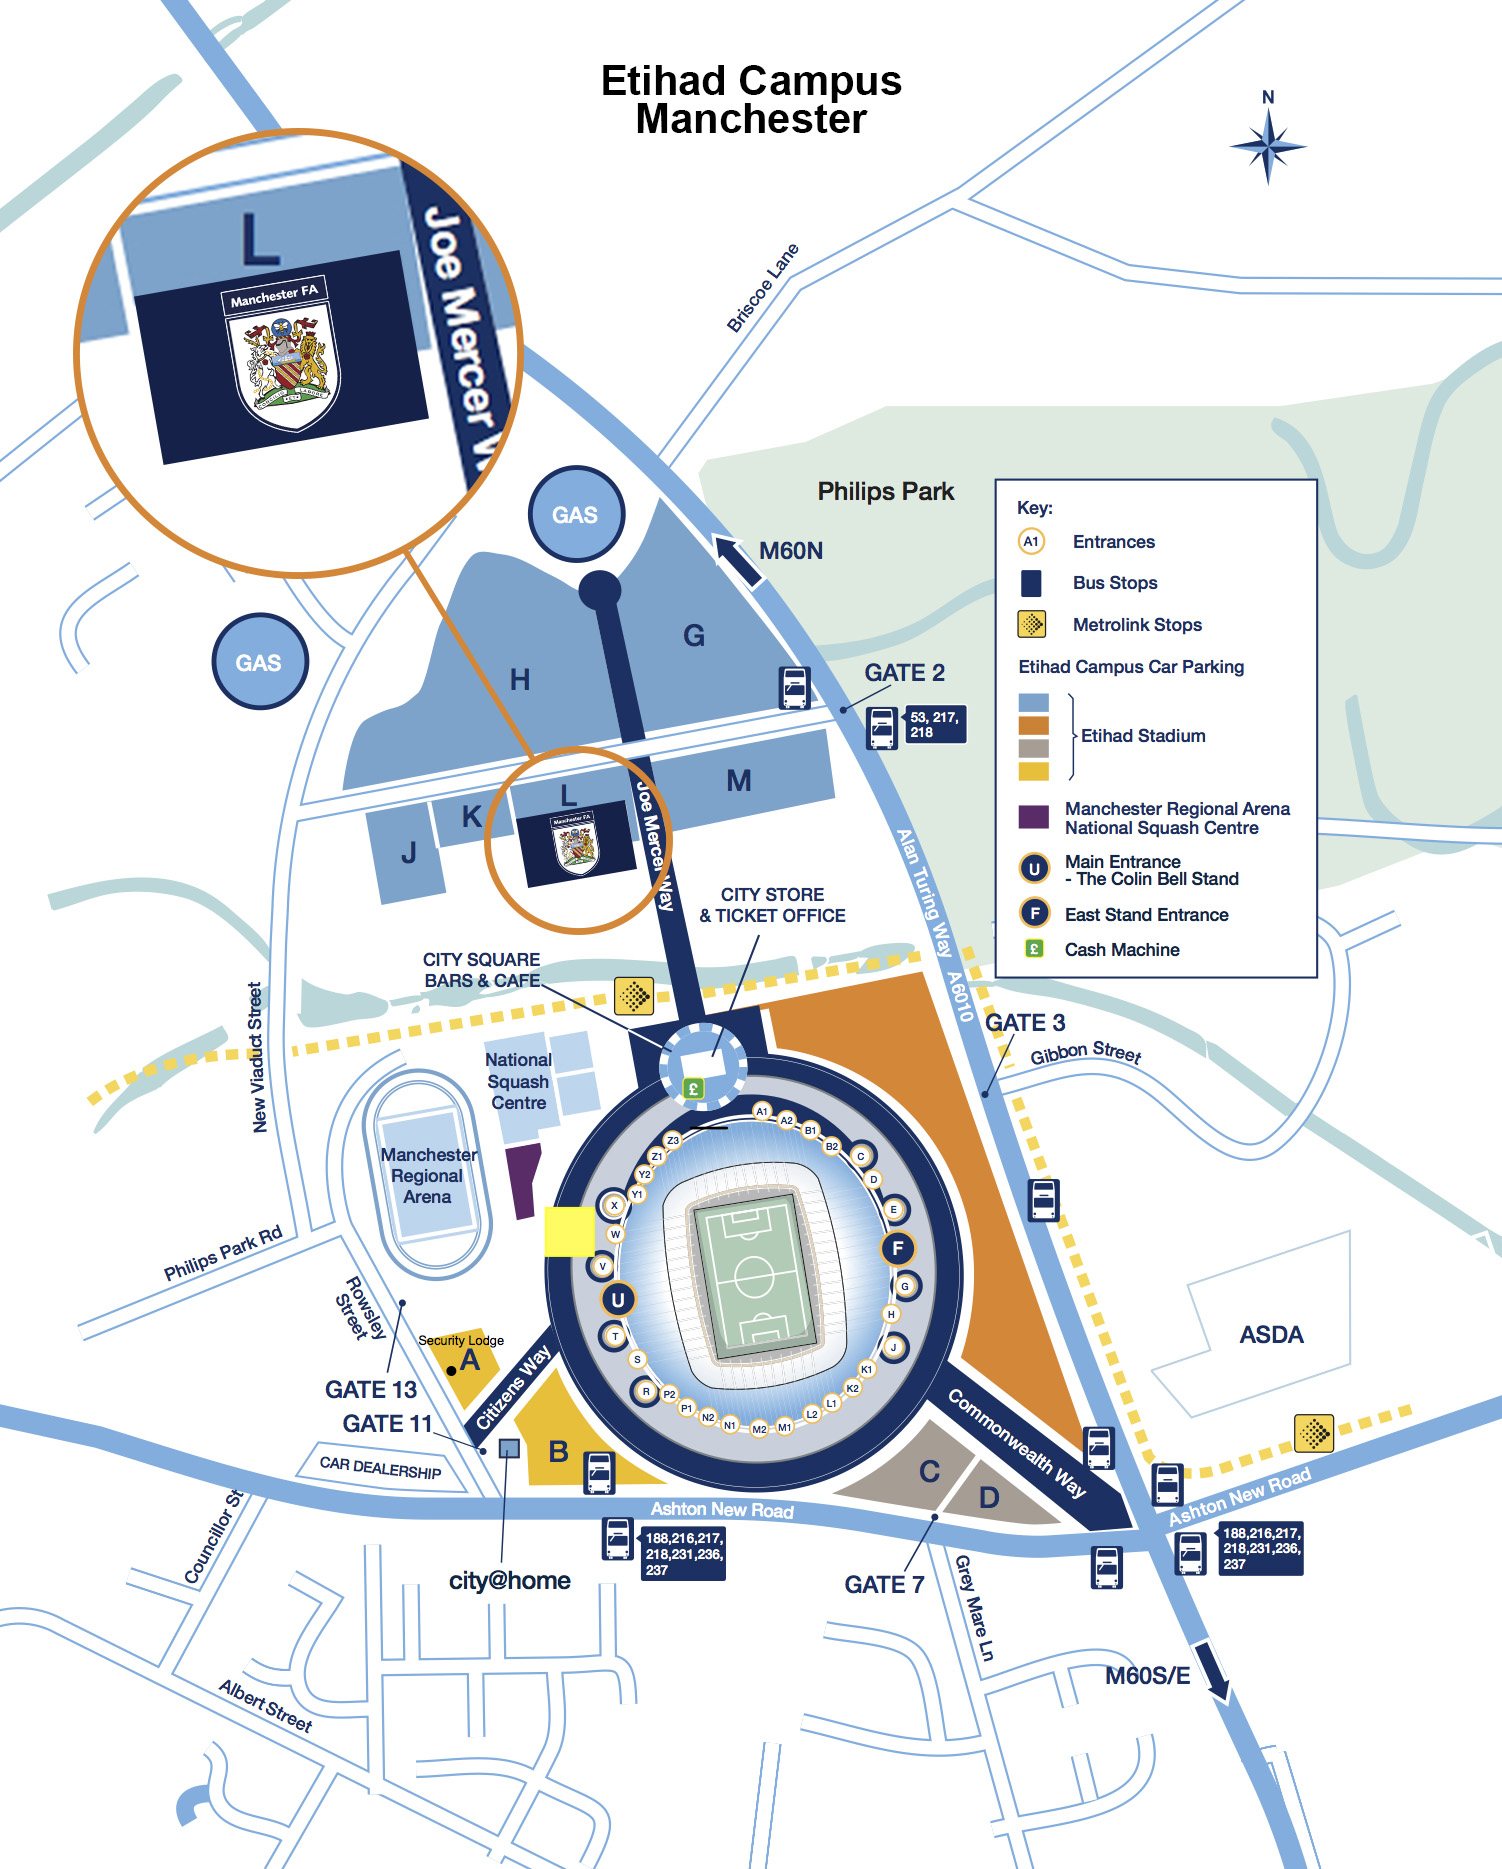 A detailed map of where the Manchester FA offices are located on the Etihad Campus.